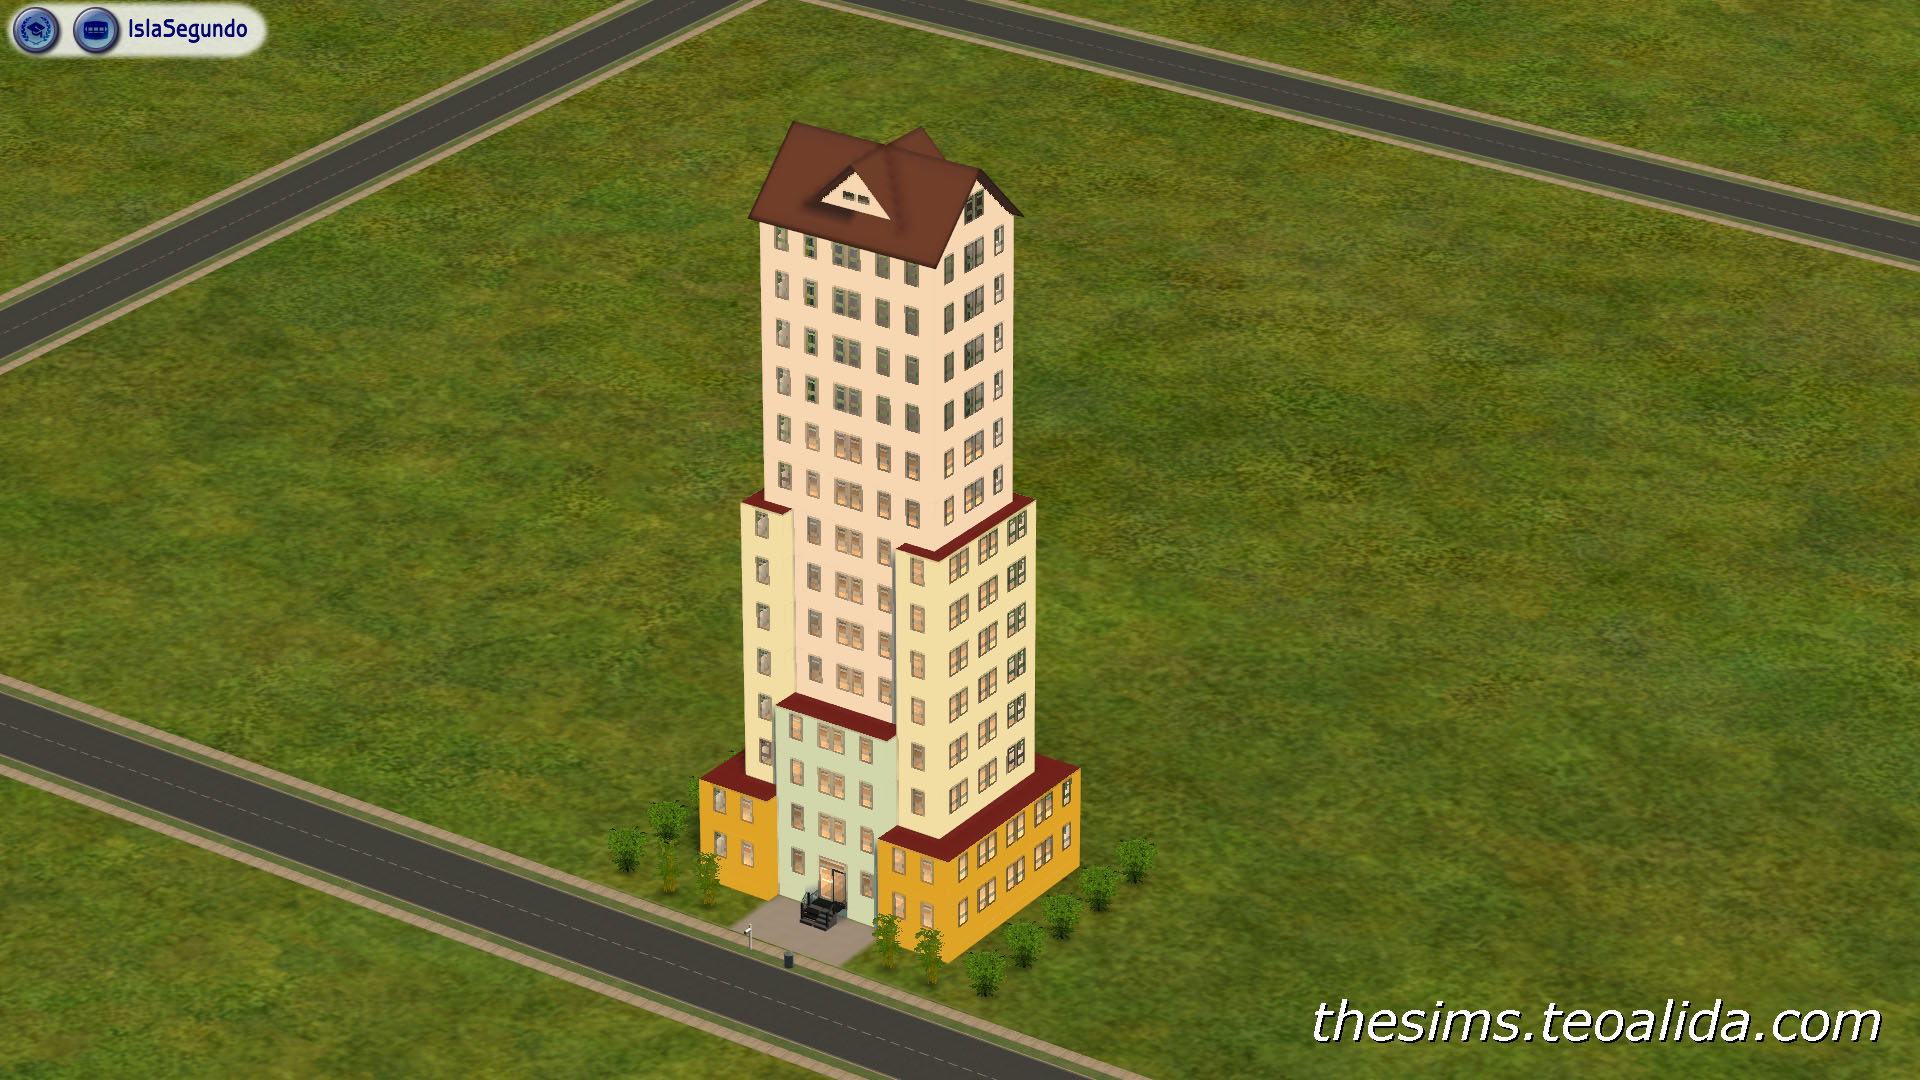 How to build taller than 5 floors - The Sims fan page